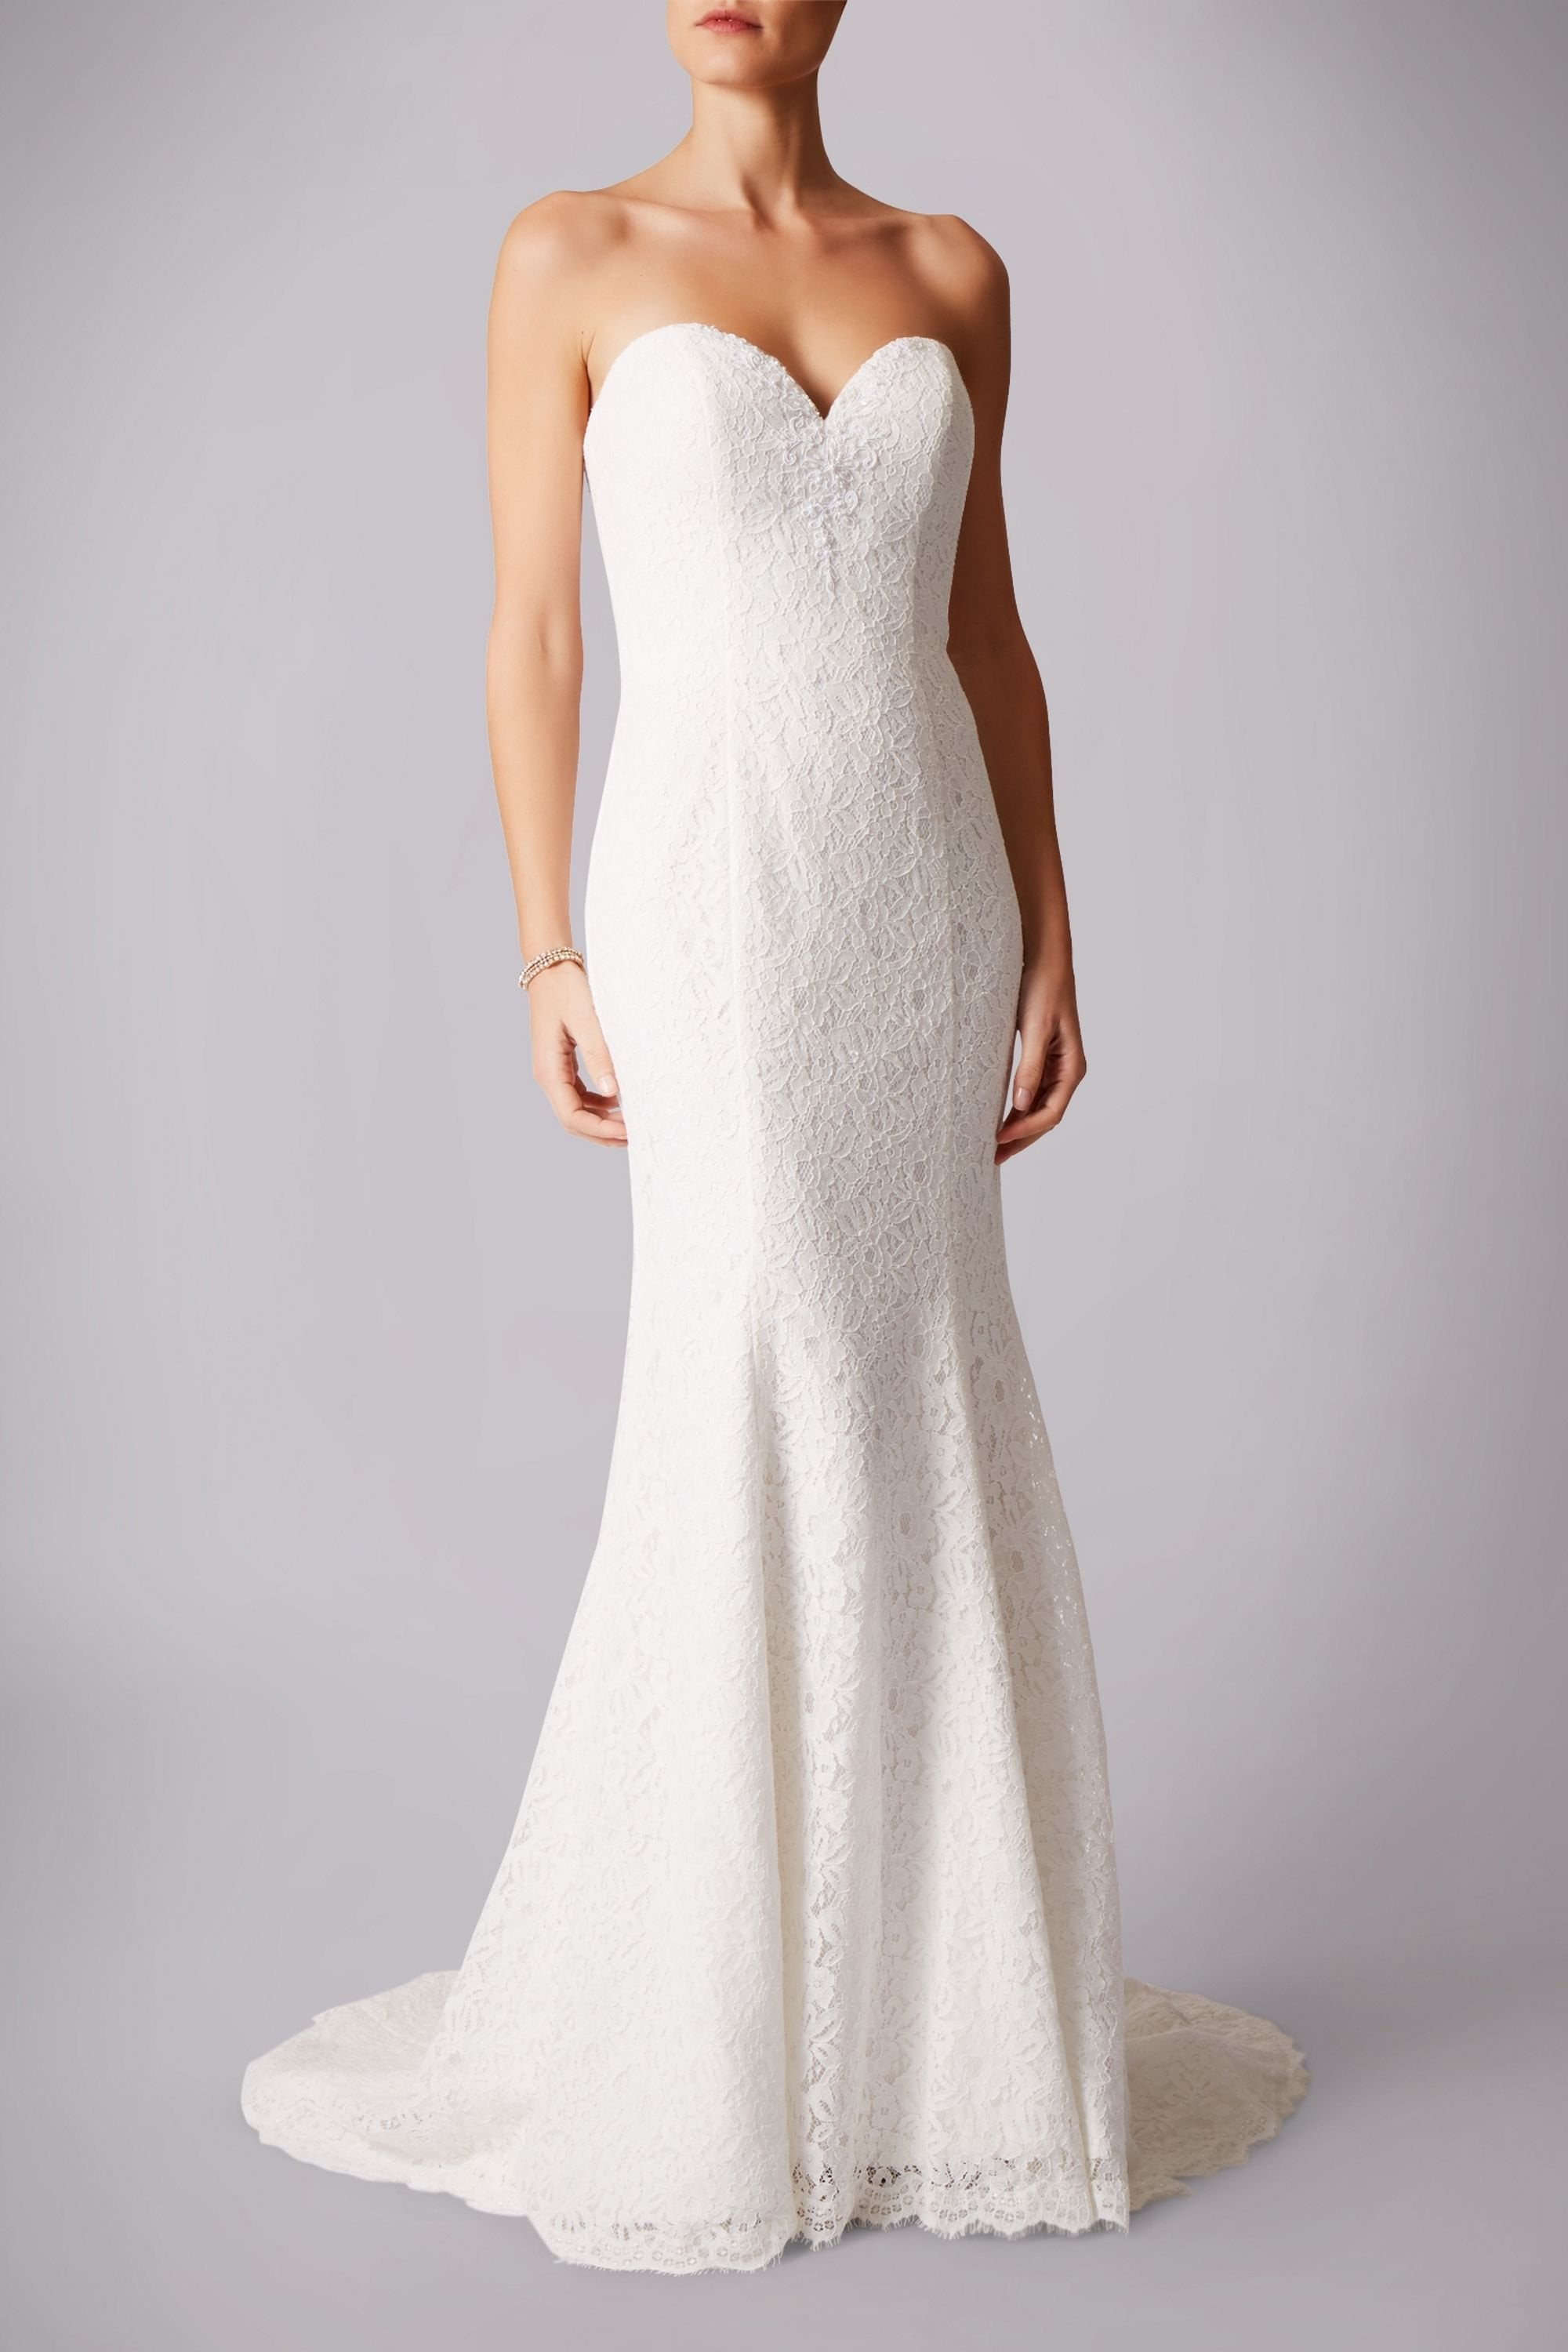 Mascara M C181229b Lace Sweetheart Neckline Dress With Pearl Details